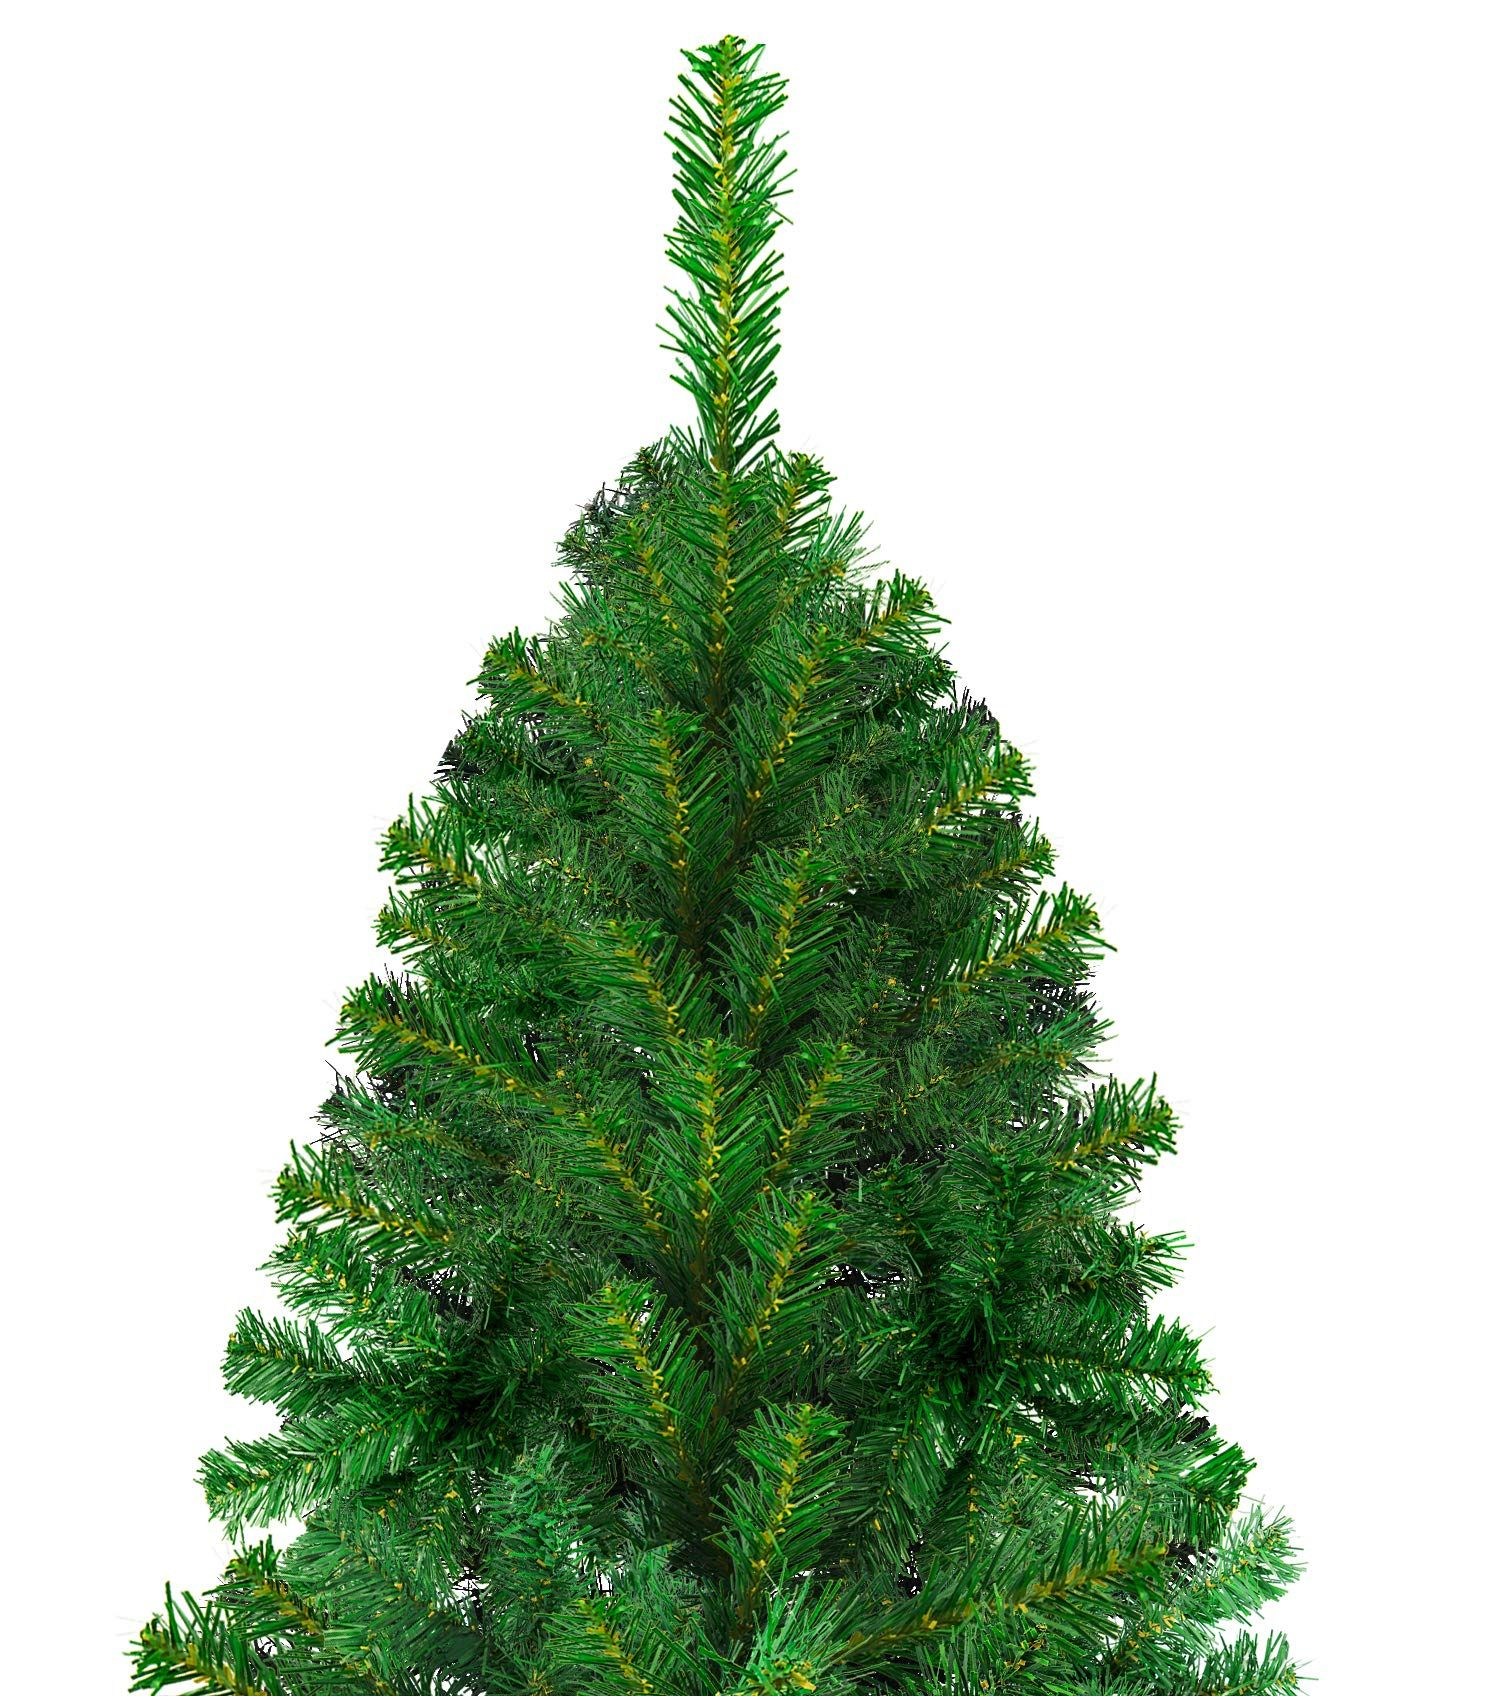 Luter 7 5 Ft Artificial Christmas Tree Spruce Hinged Xmas Tree Christmas Decorations For Indoor And O Artificial Christmas Tree Xmas Tree Christmas Decorations